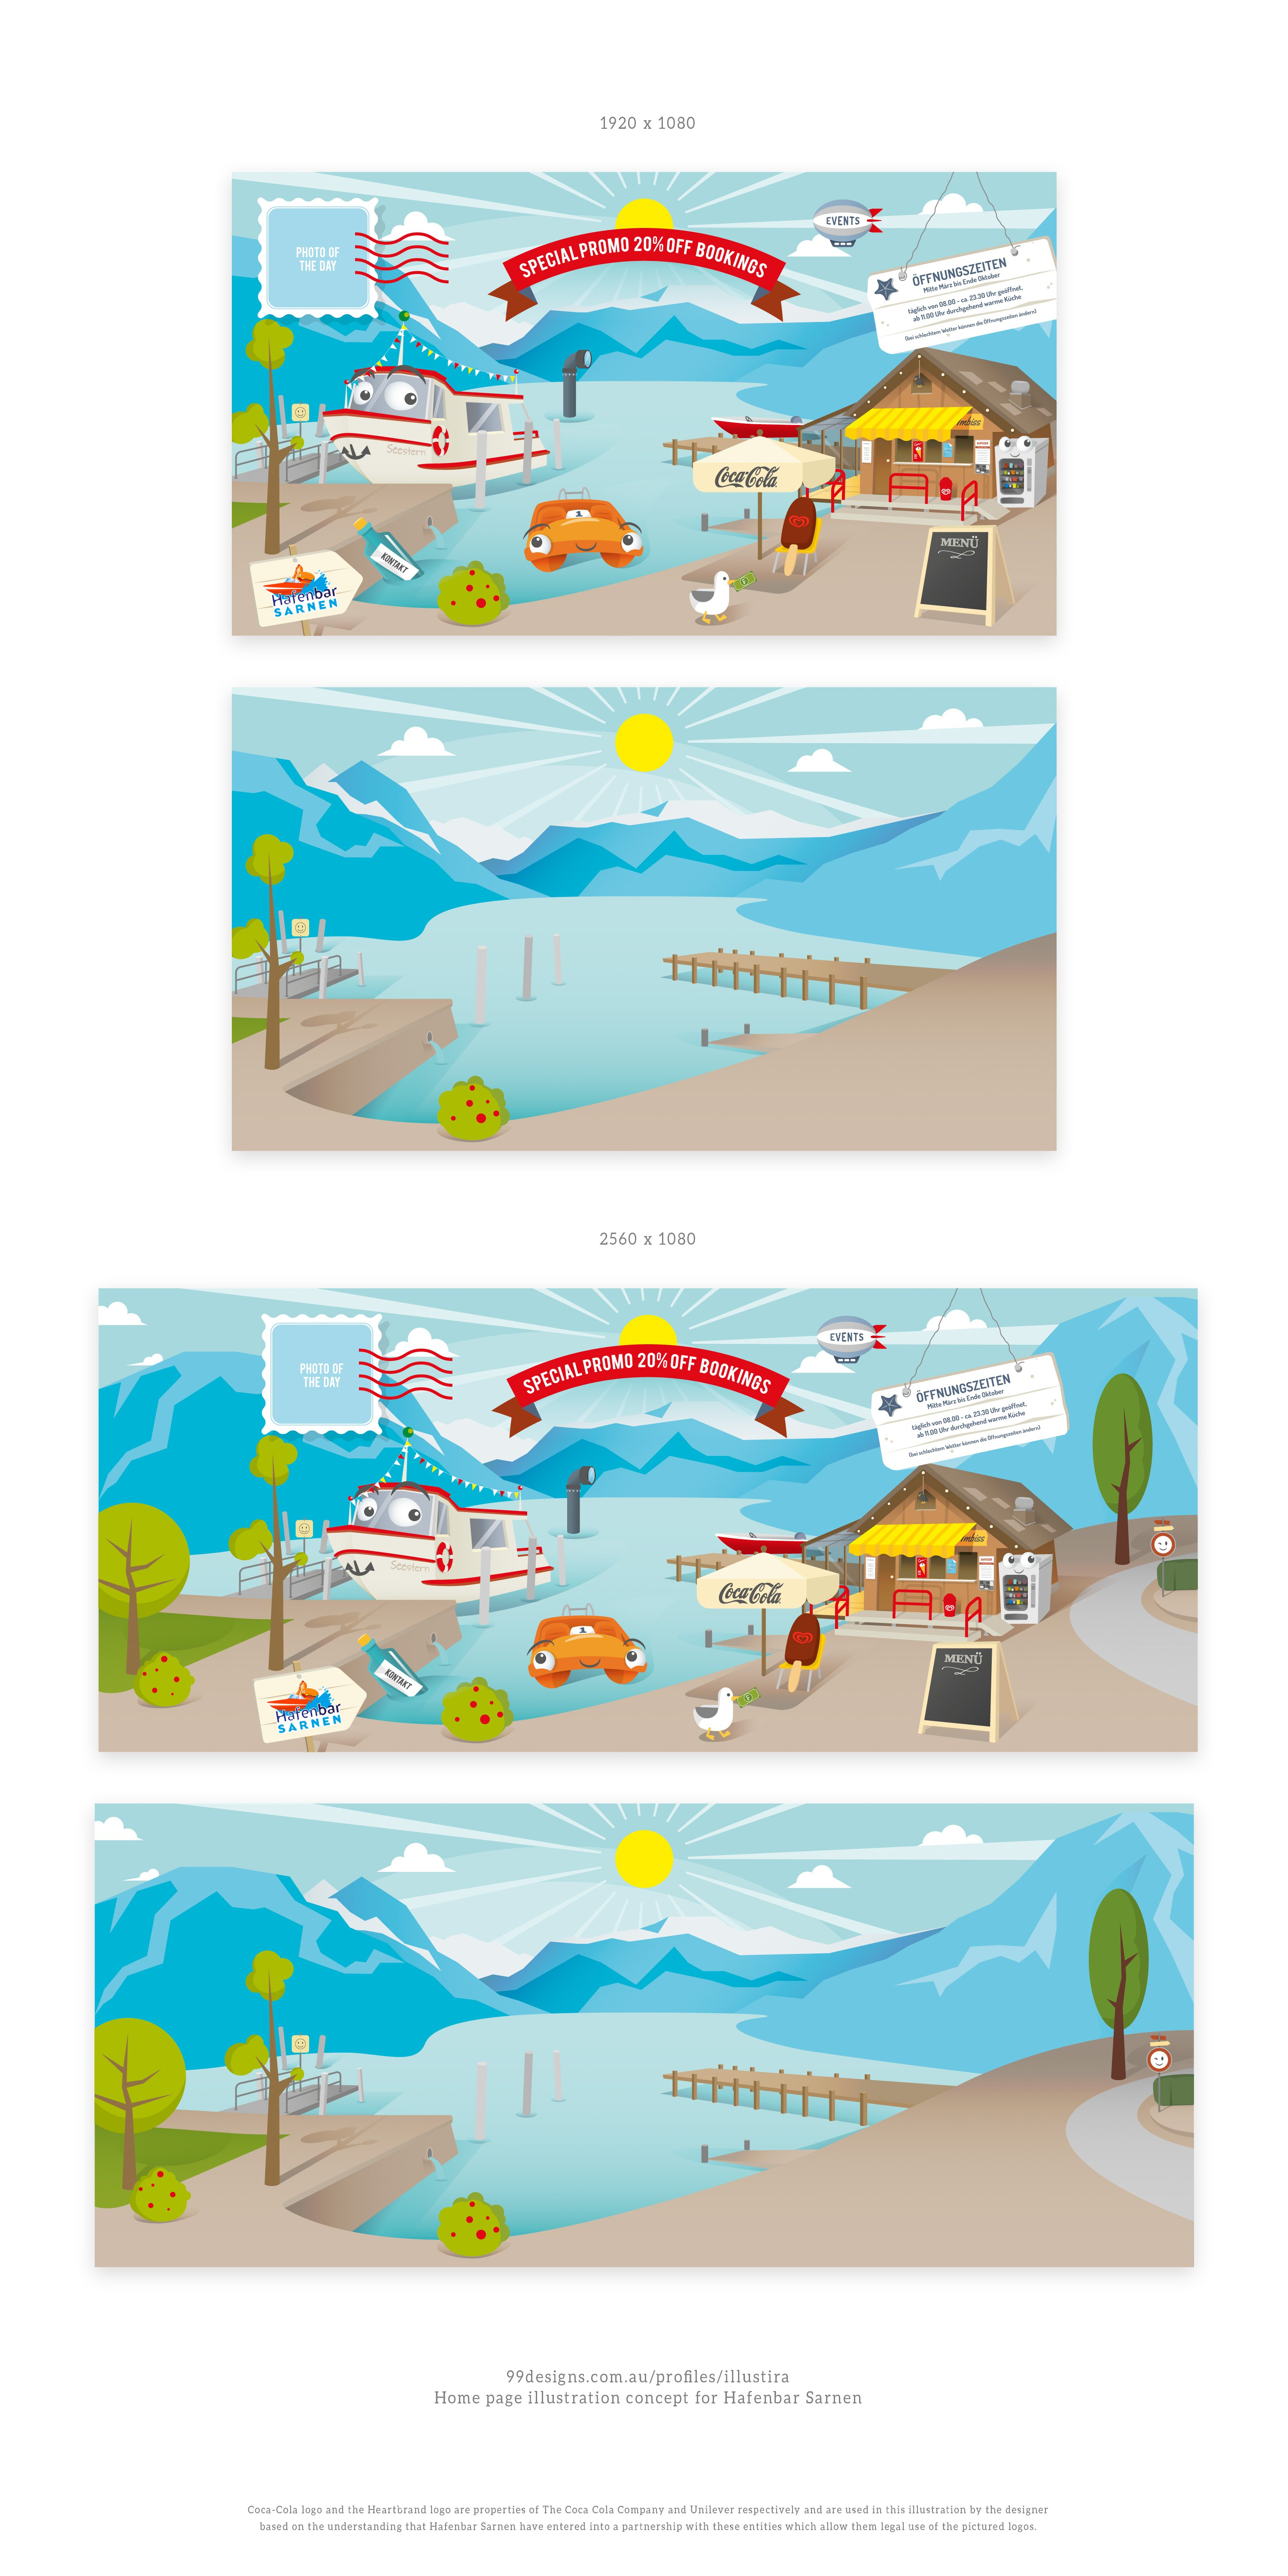 Snack bar with pedalo rental needs a cool & fun illustration in cartooon style for our new website design